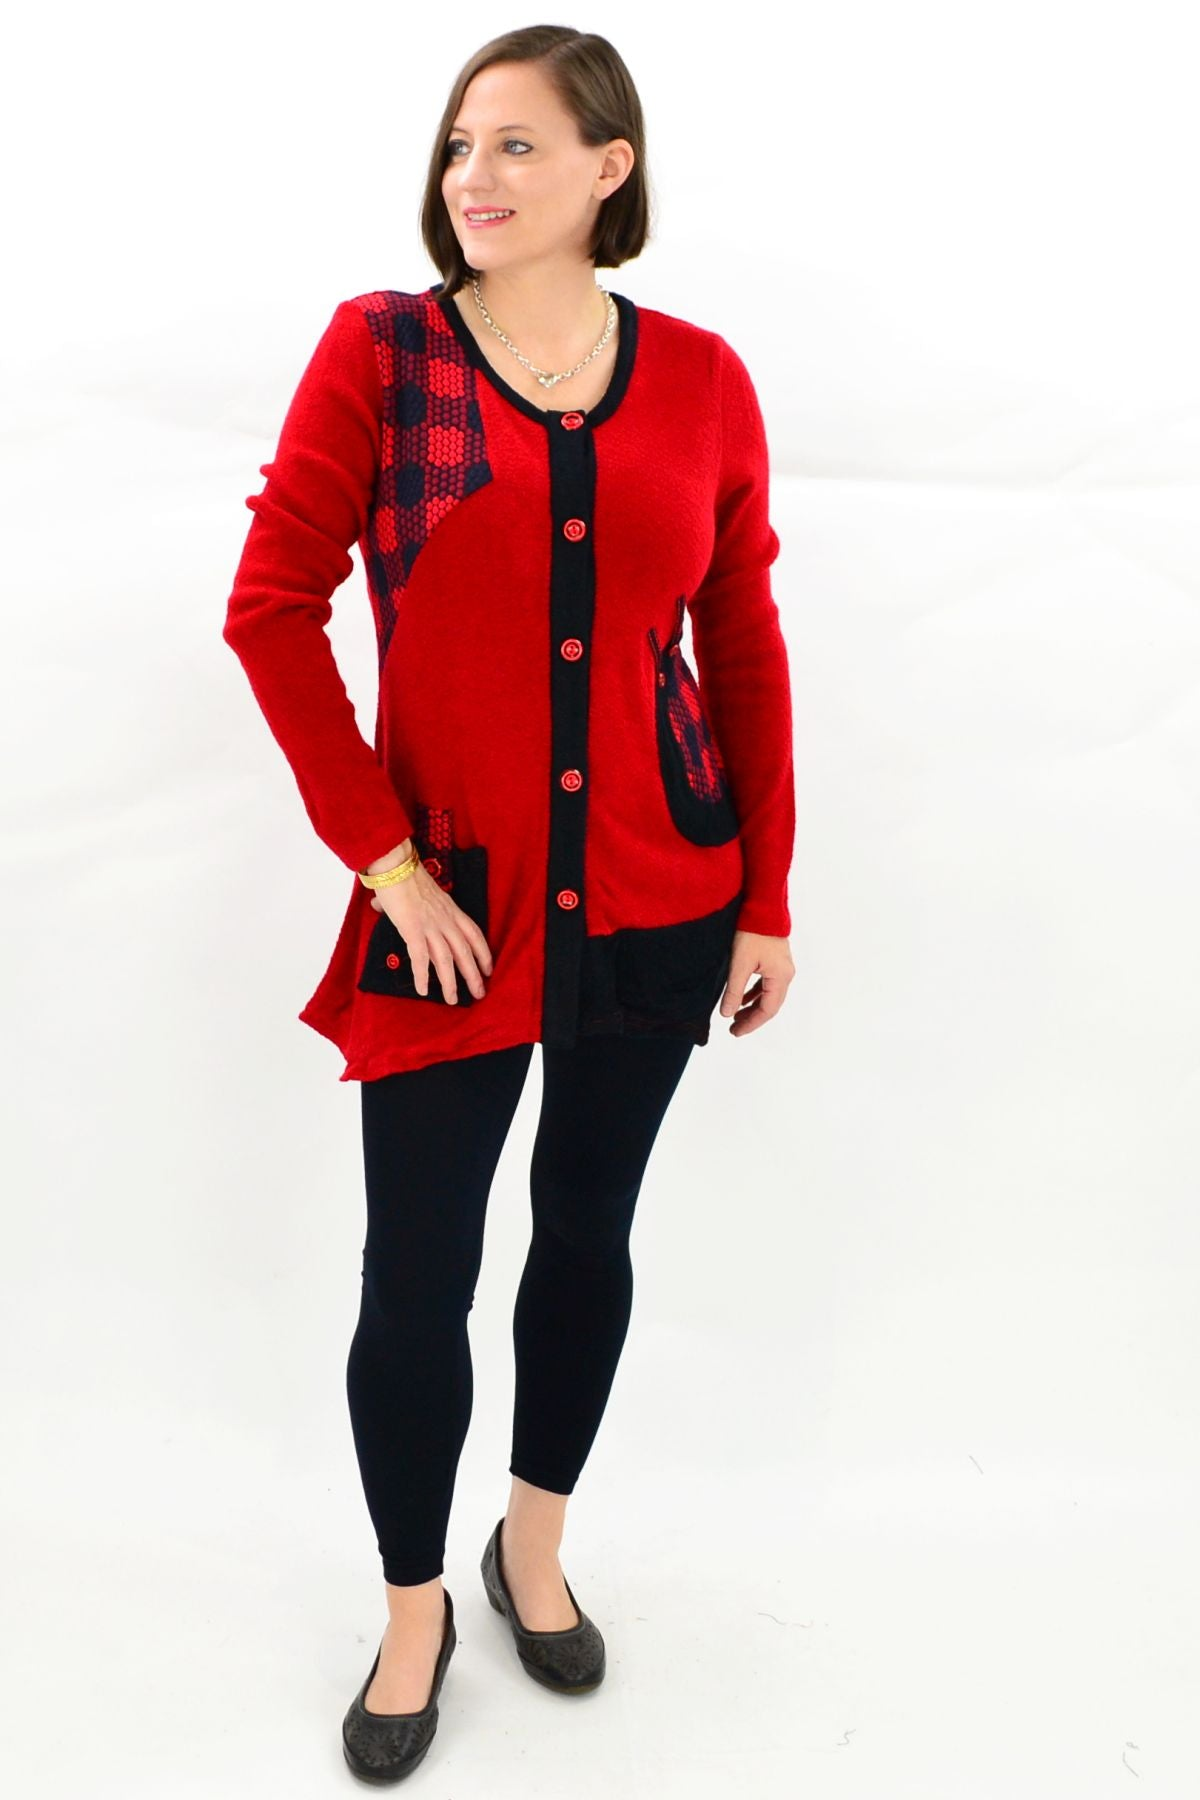 Aria Winter Tunic Top | I Love Tunics | Tunic Tops | Tunic Dresses | Women's Tops | Plus Size Australia | Mature Fashion